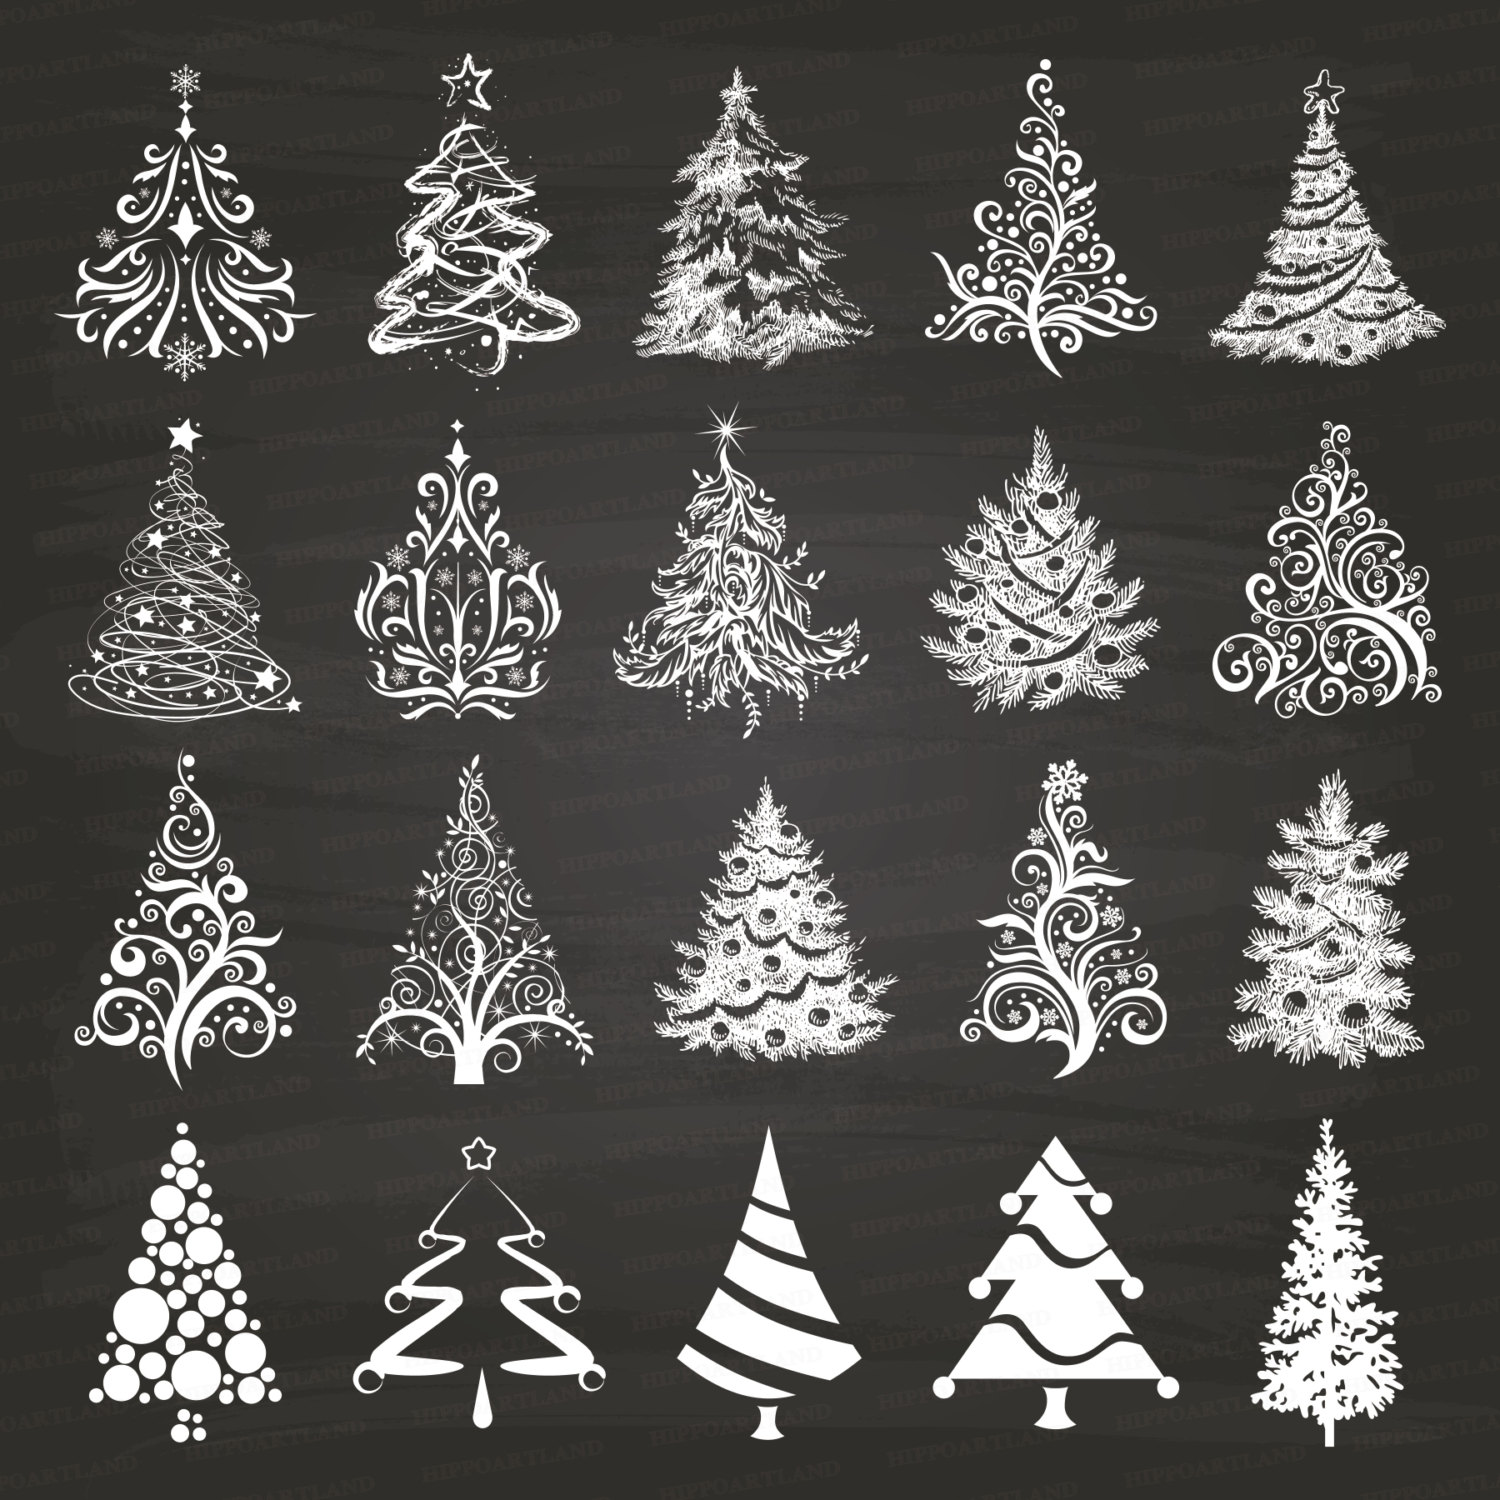 Chalkboard art clipart tree png freeuse Chalkboard christmas tree clipart black and white - ClipartFox png freeuse